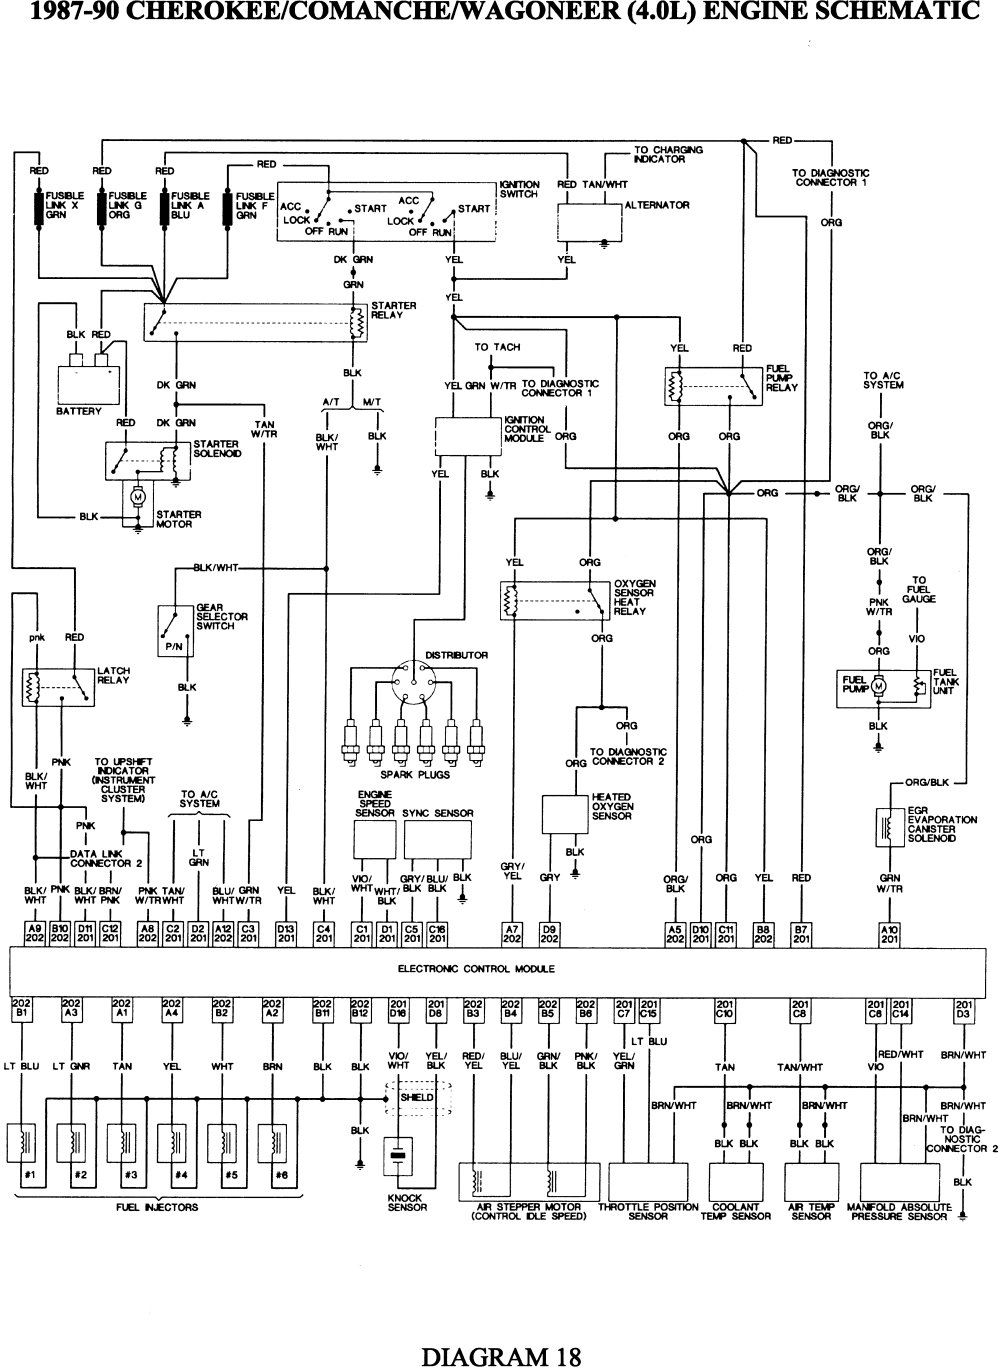 [GJFJ_338]  Jeep Transmission Wiring Diagram In 97 Wrangler - Wiring Diagram with 1990  Jeep Wrangler Wiring Diagram | 97 jeep wrangler, Jeep grand cherokee, Jeep  cherokee | 1990 Jeep Cherokee Laredo Wiring Diagram |  | Pinterest